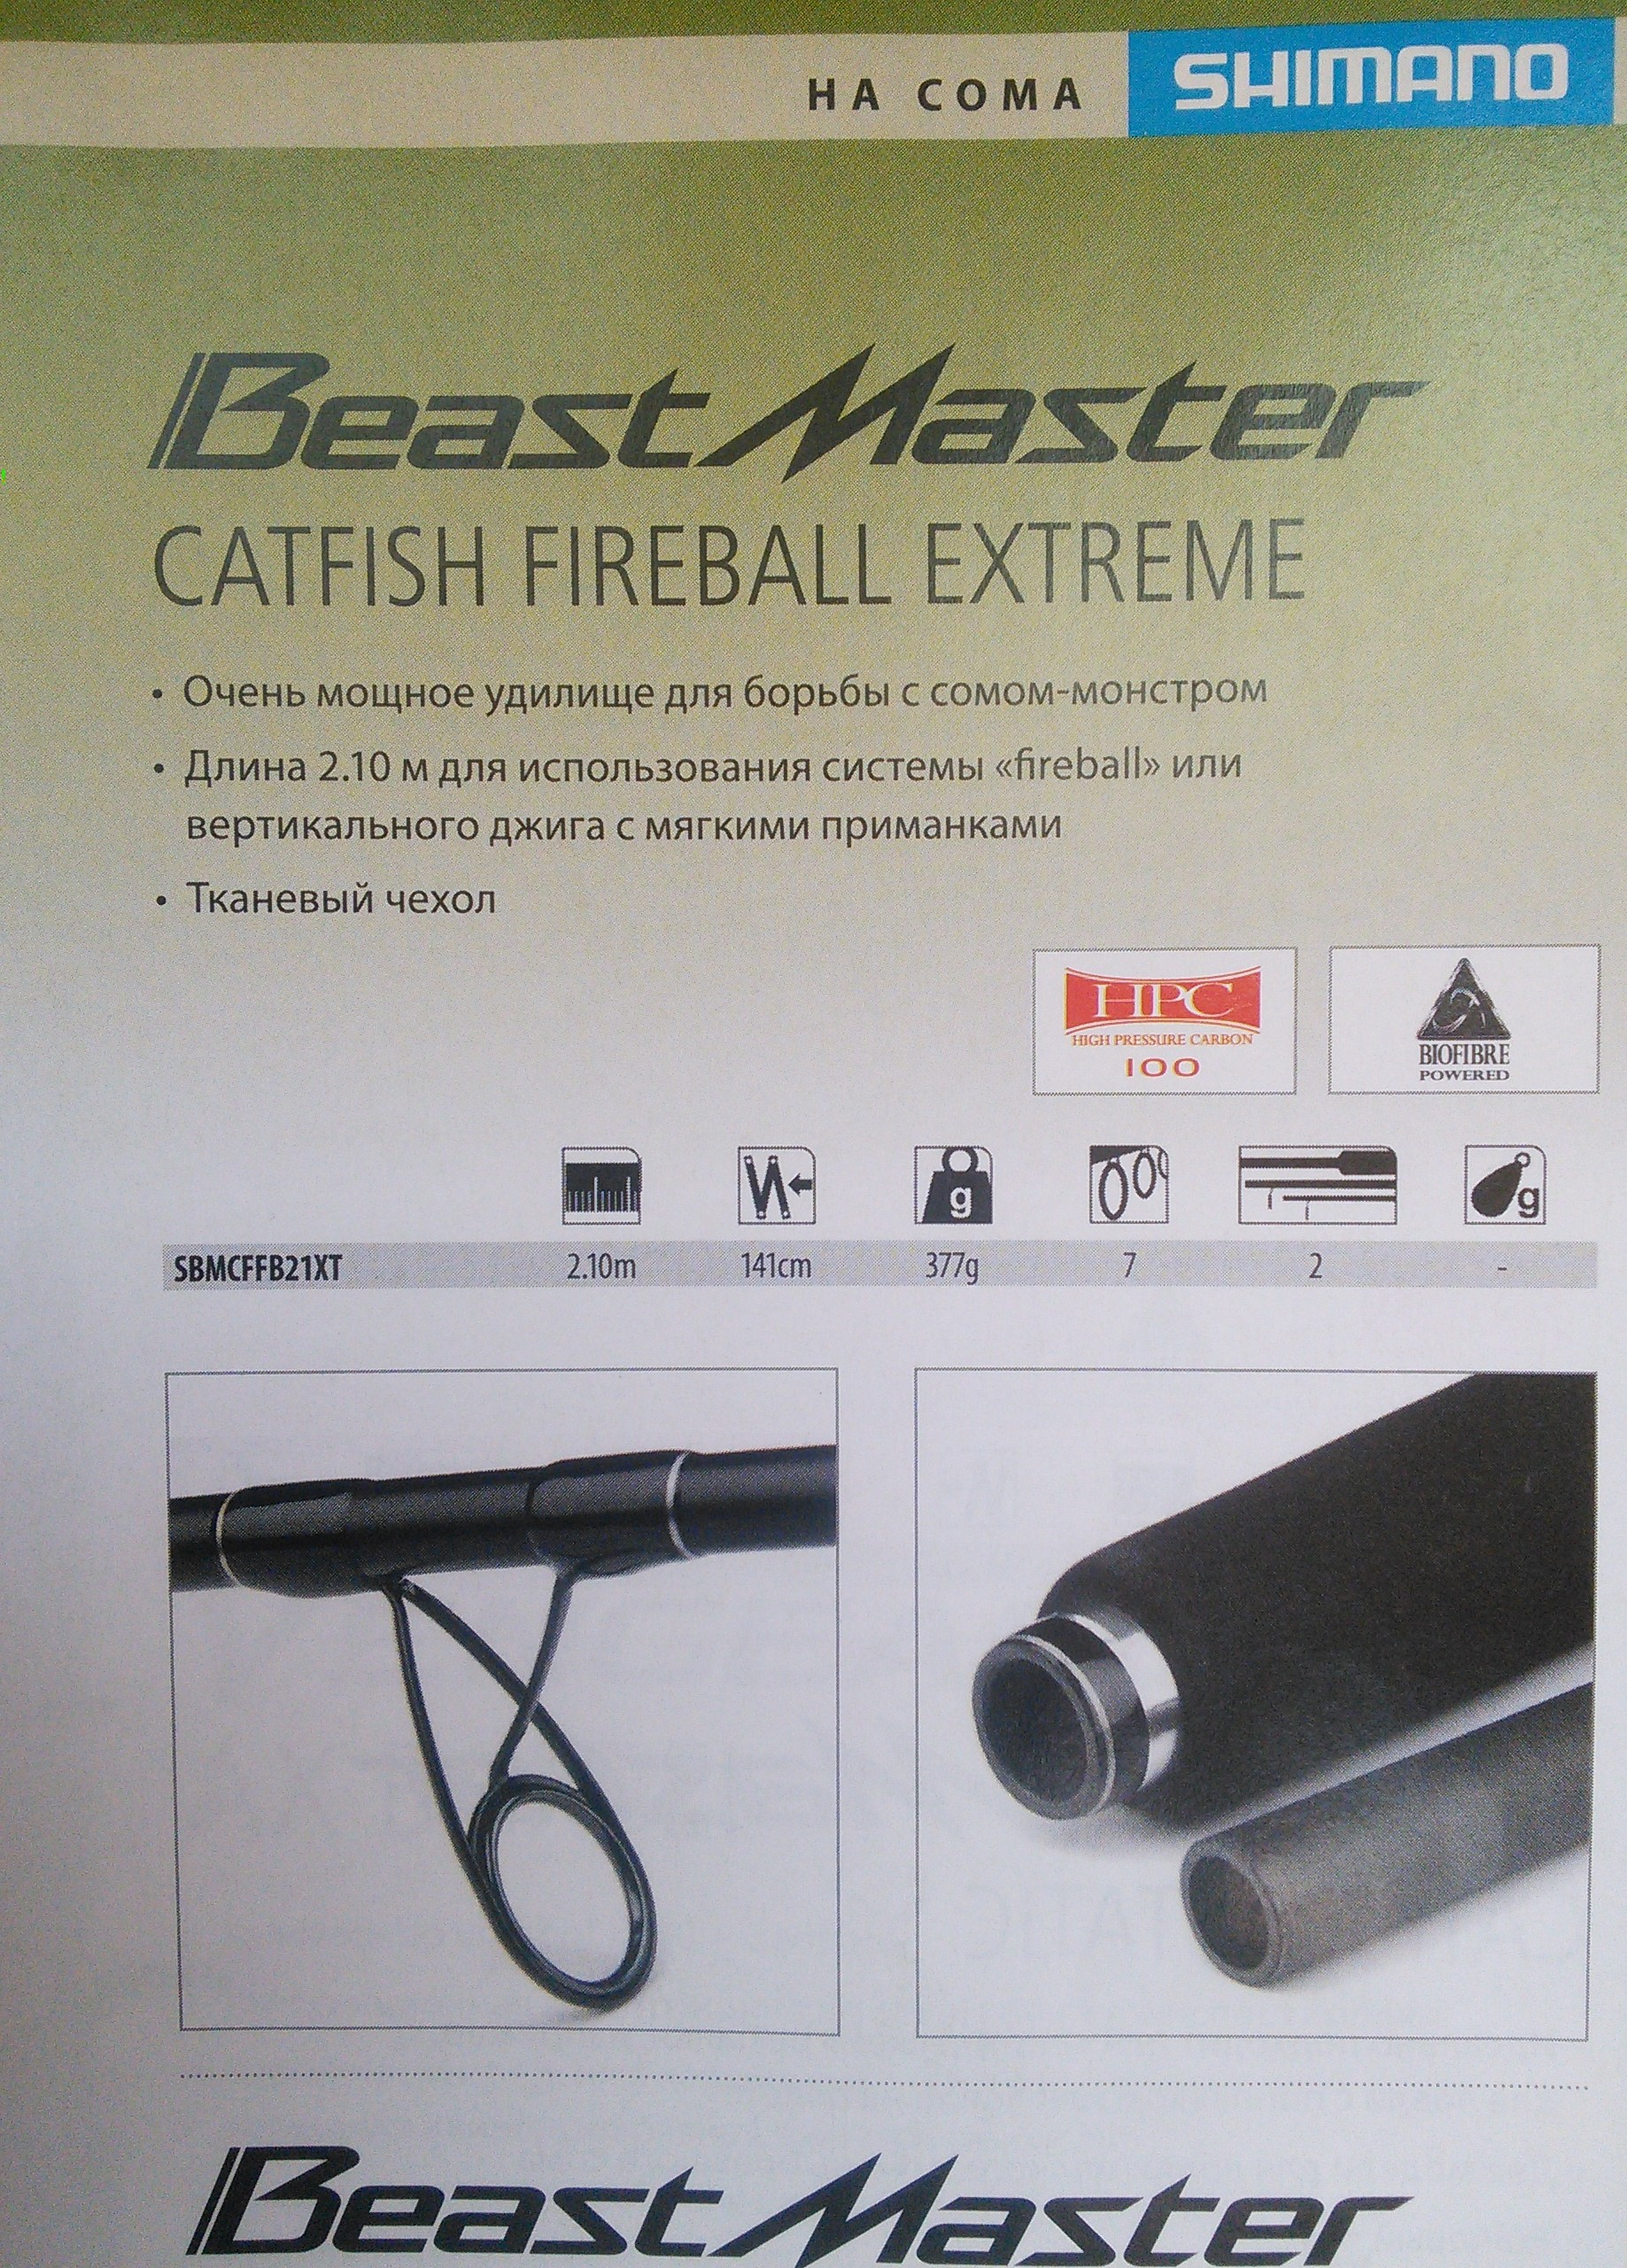 BEASTMASTER CATFISH FIRE BALL EXTREME